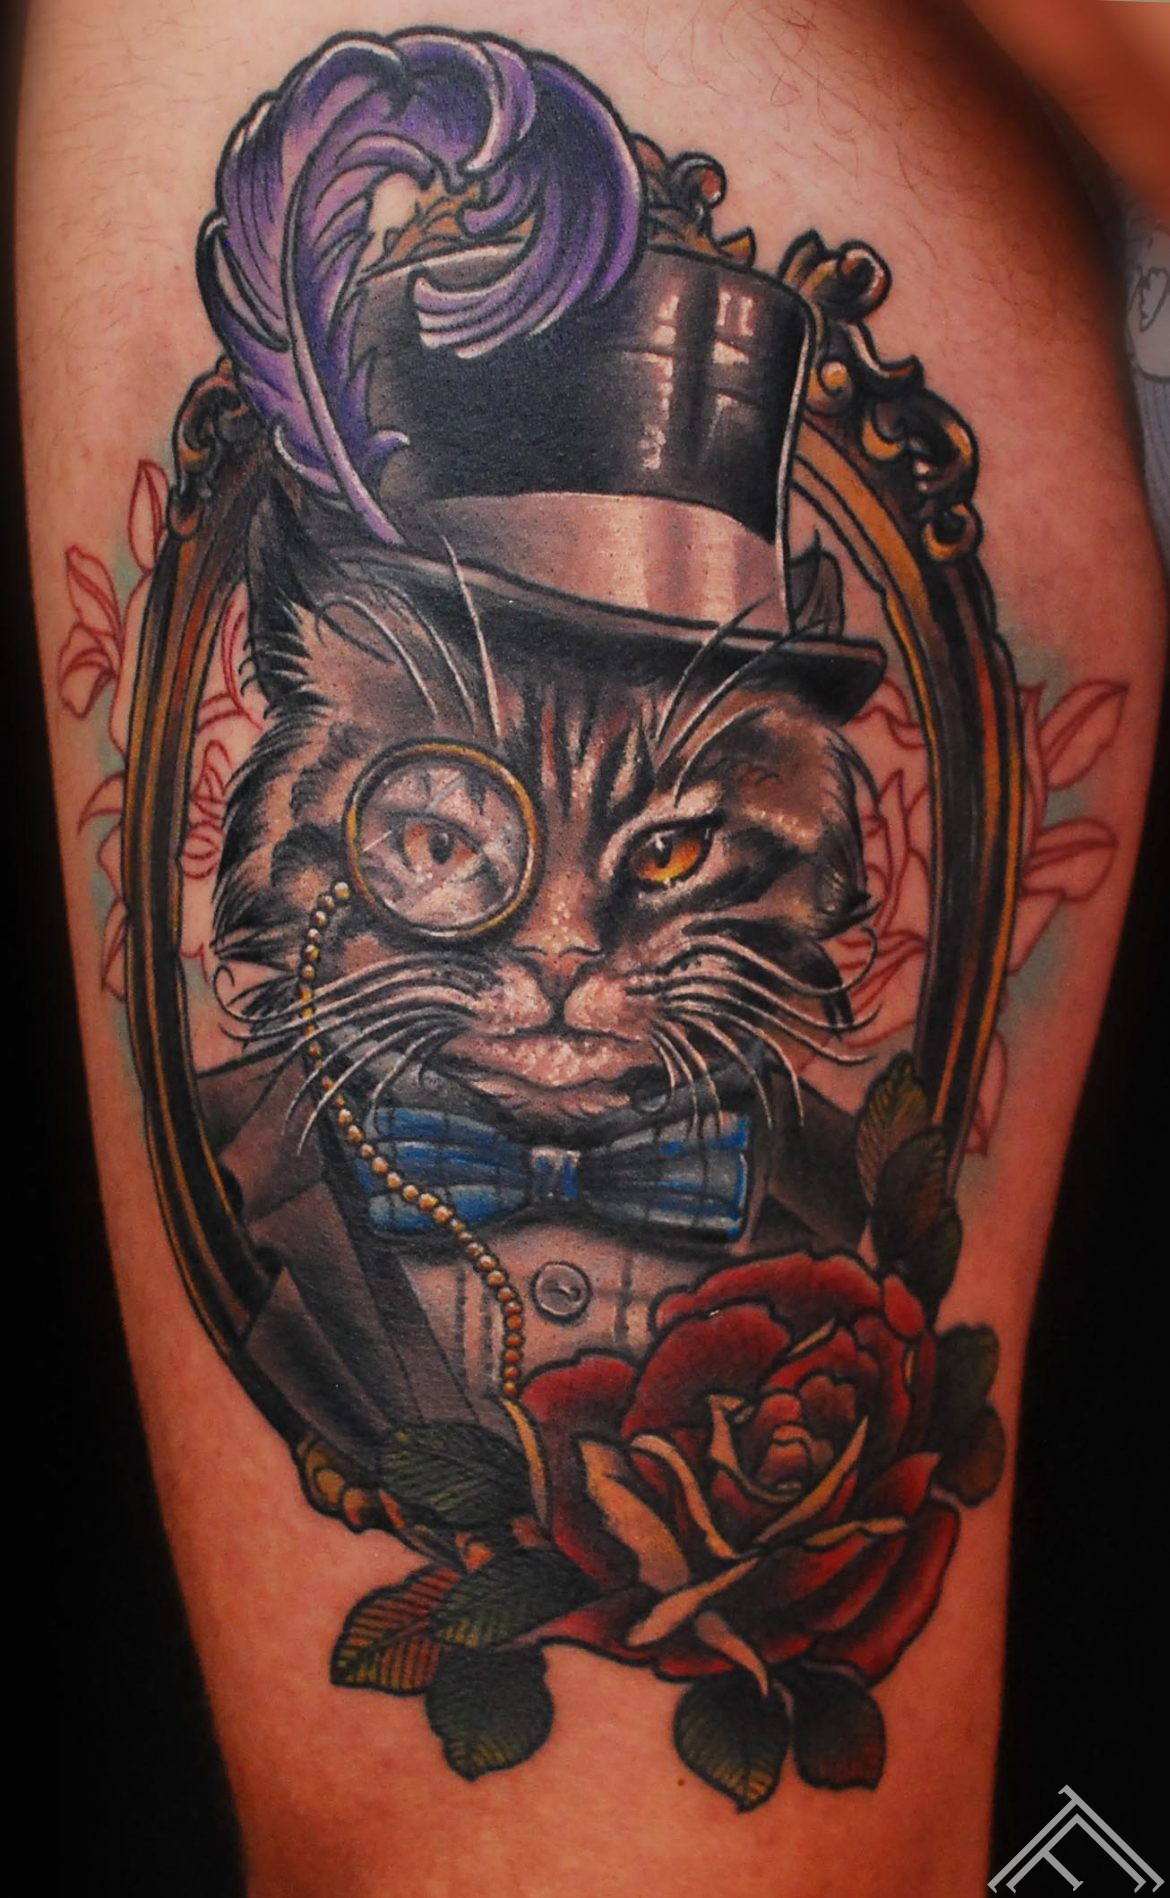 Tattoo_newtradicional_cat_monocle_feather_gentleman_marispavlo_tattoofrequency_healed_portfolio